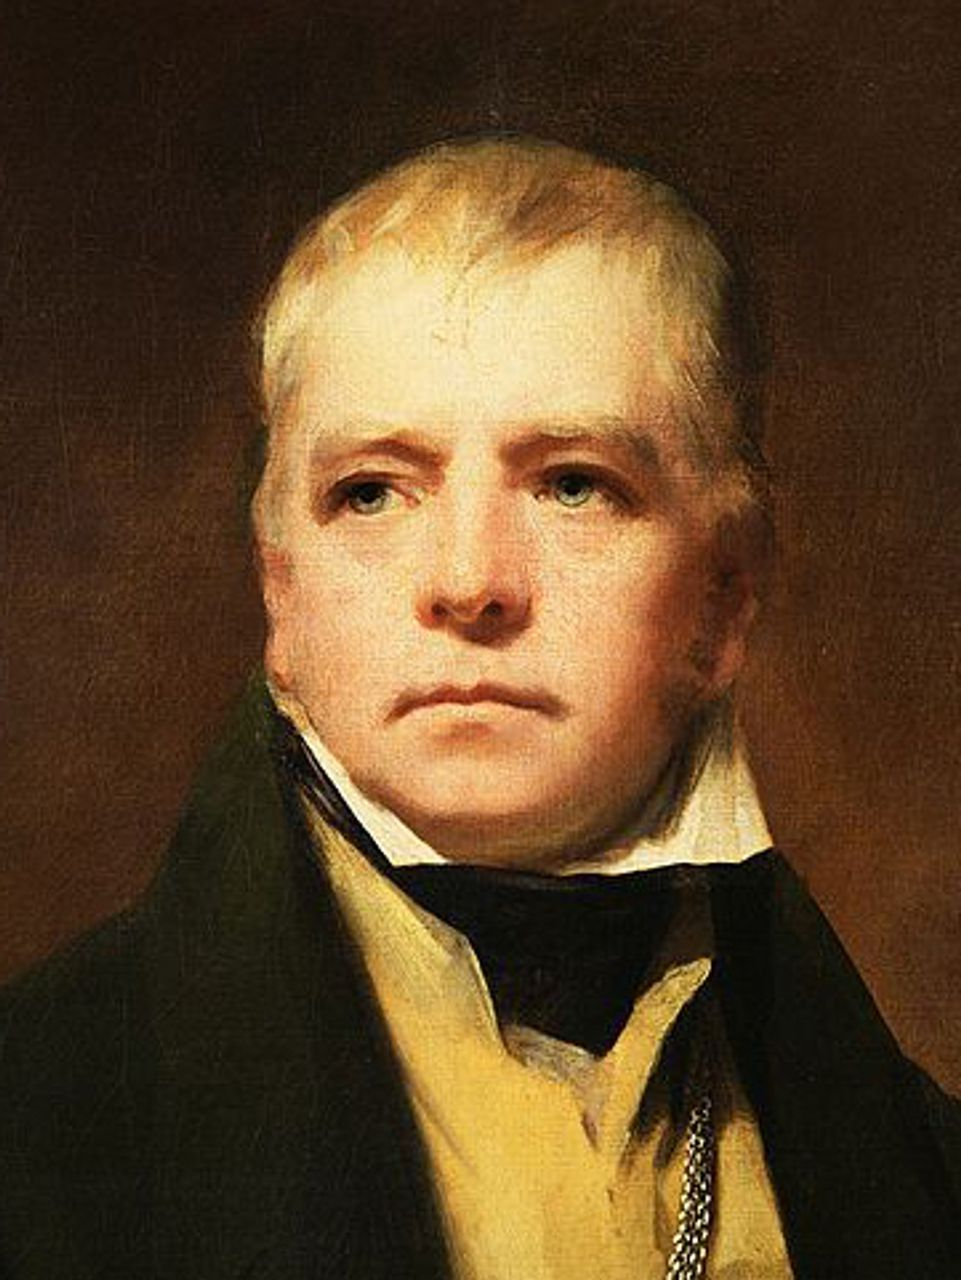 Sir Henry Raeburn's portrait of Sir Walter Scott (1822)